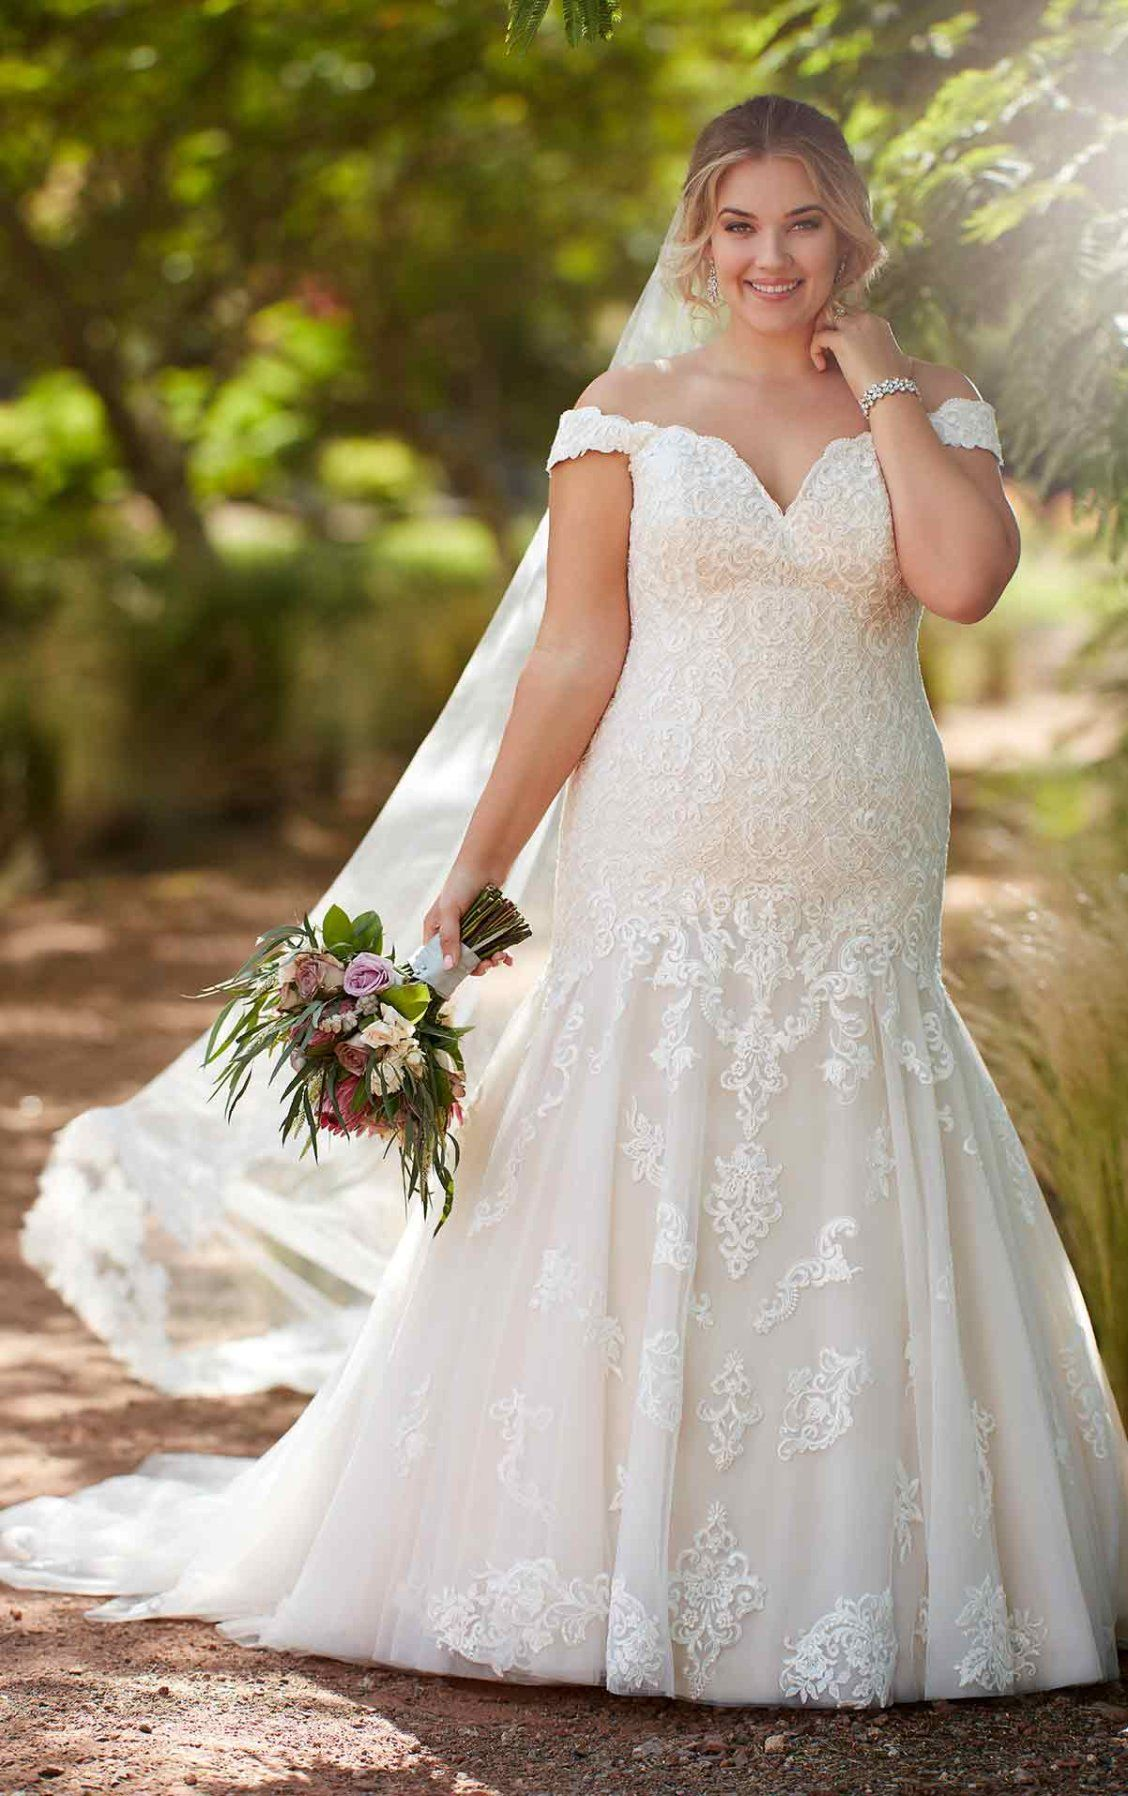 Retro wedding dress  Vintage OfftheShoulder Wedding Gown  Wedding ideas  Pinterest